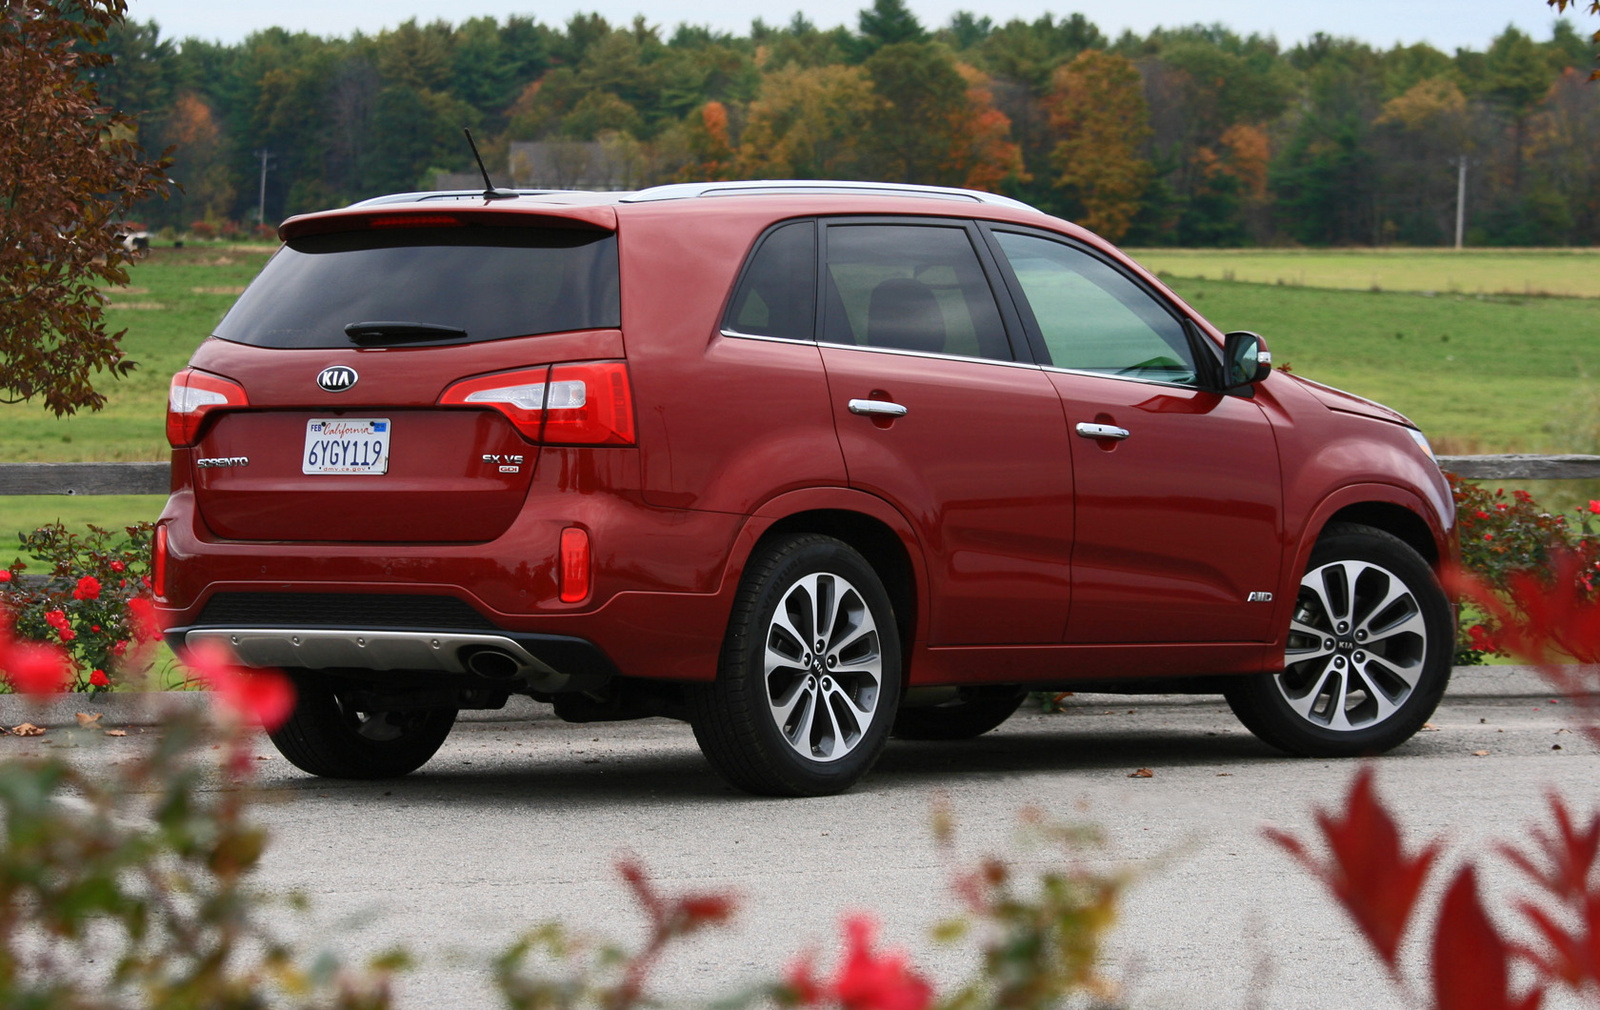 Related to 2014 Kia Sorento - Test Drive Review - CarGurus